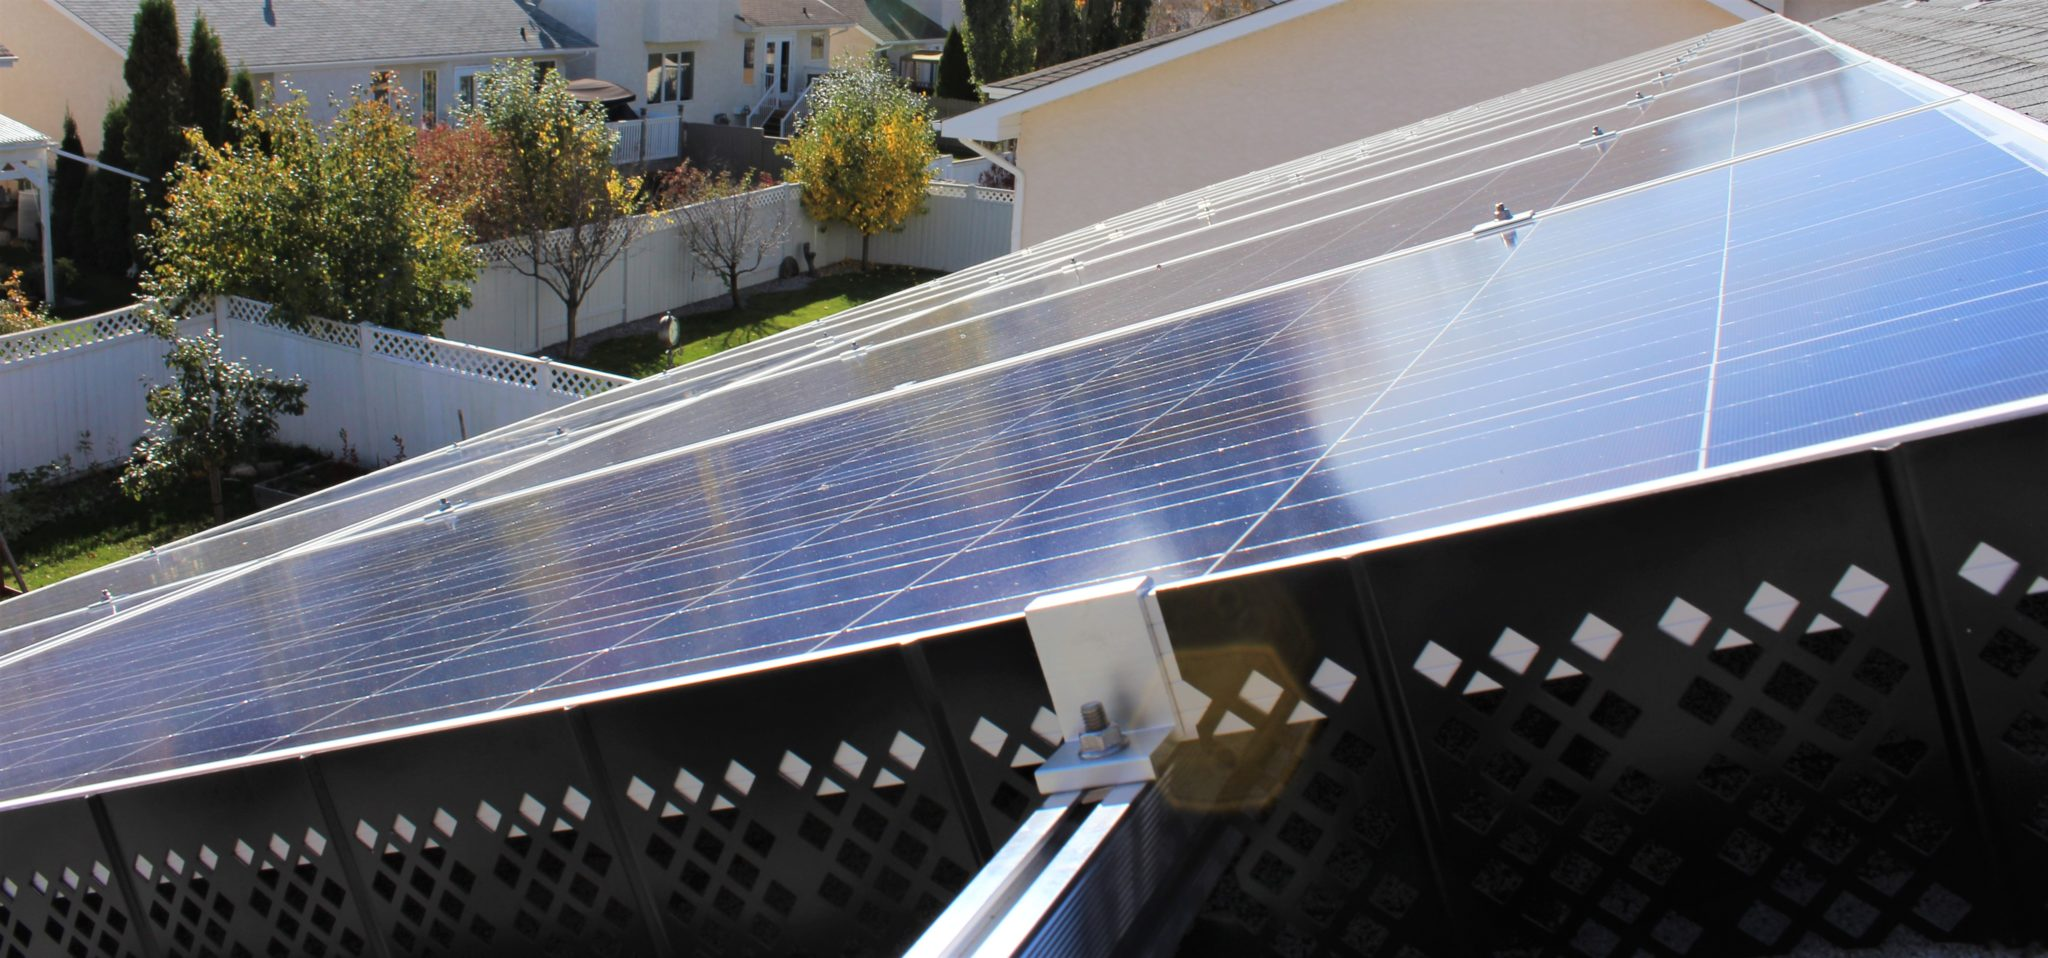 Roof-mounted solar panels with trim